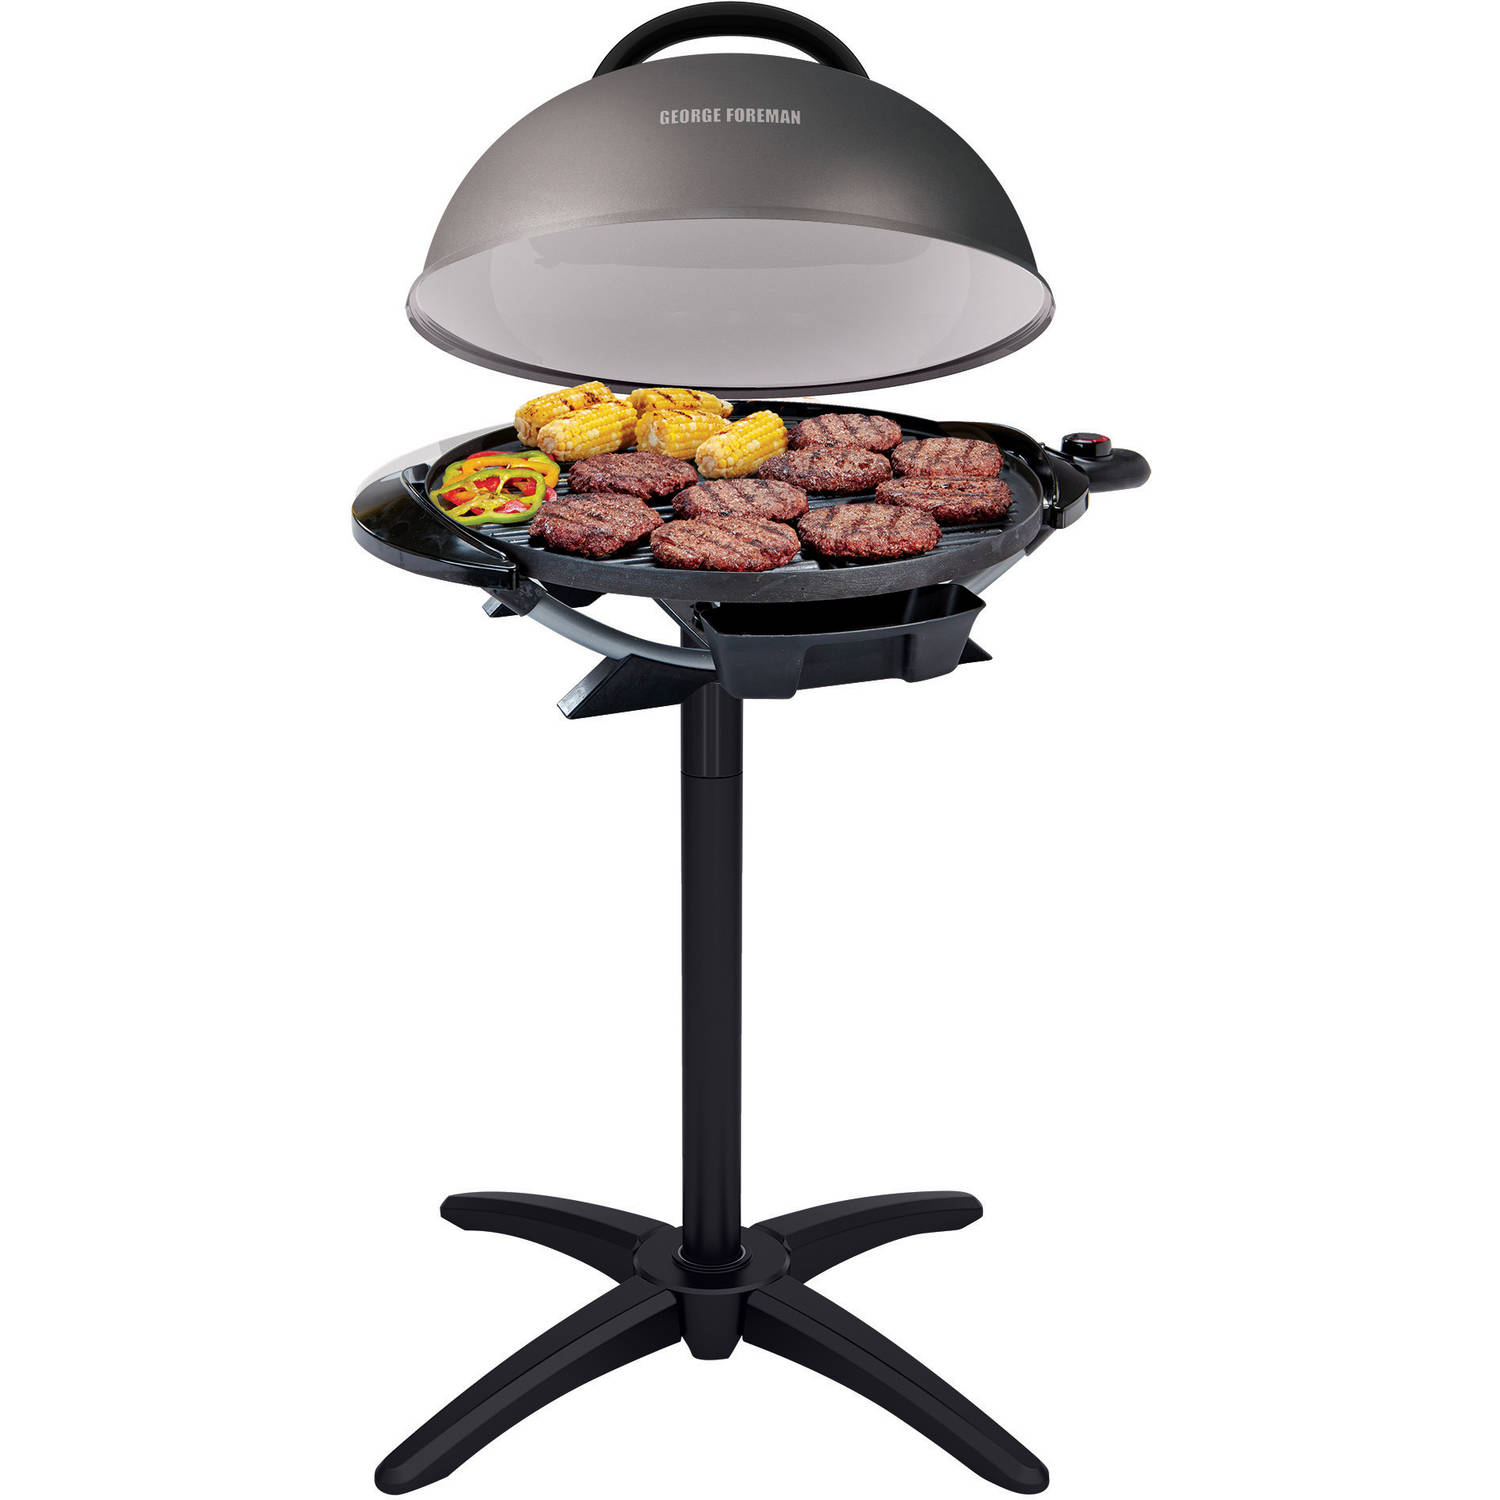 "George Foreman 240"" Indoor/Outdoor Grill"